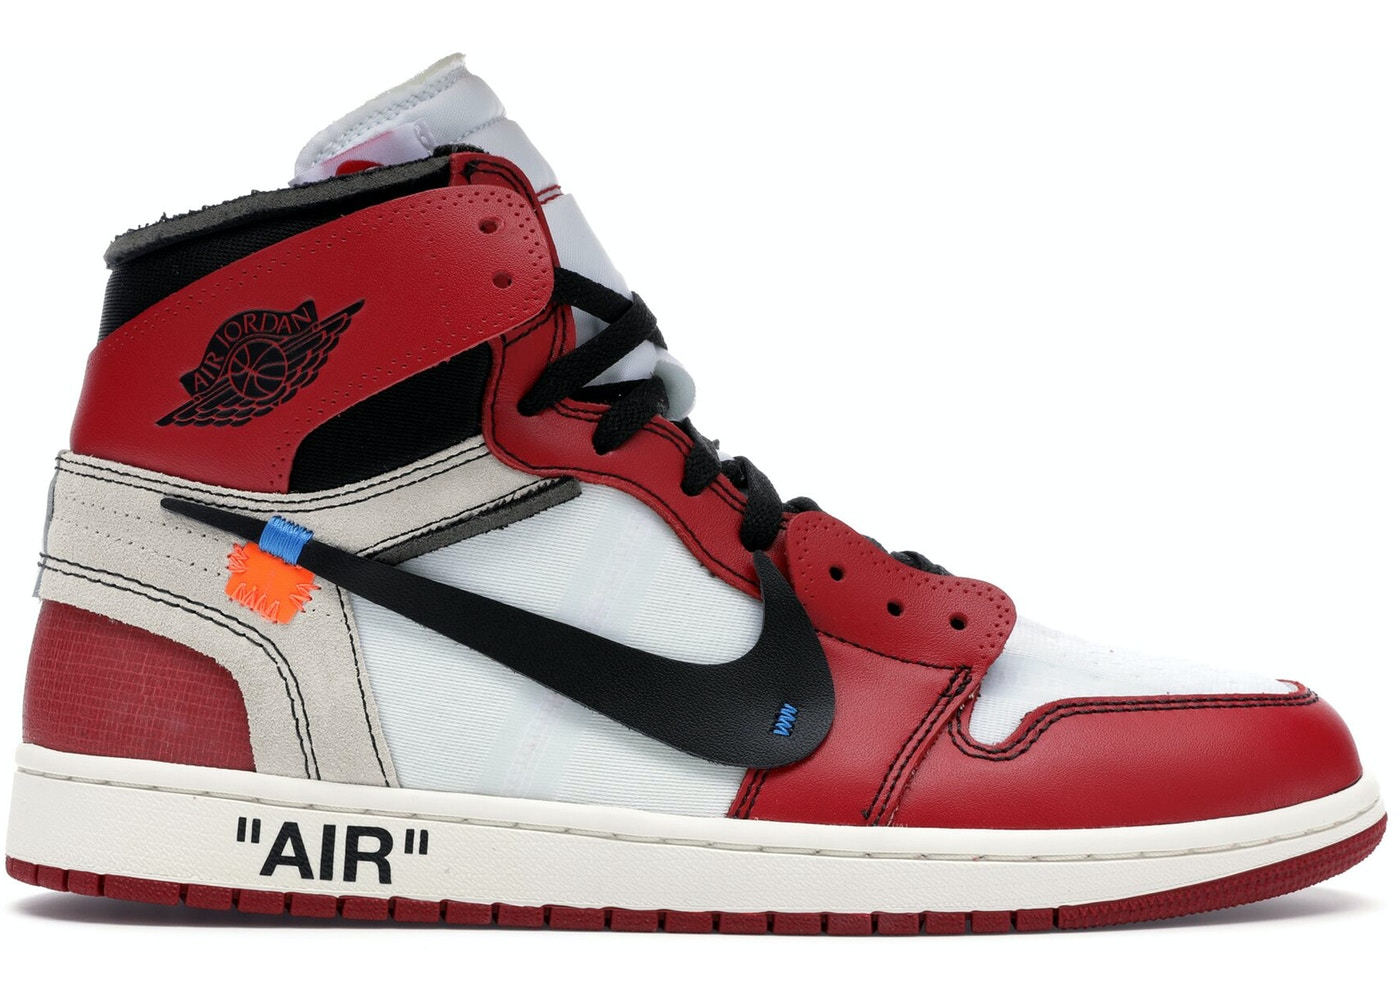 on sale 1256a 5d98f Jordan 1 Retro High Off-White Chicago